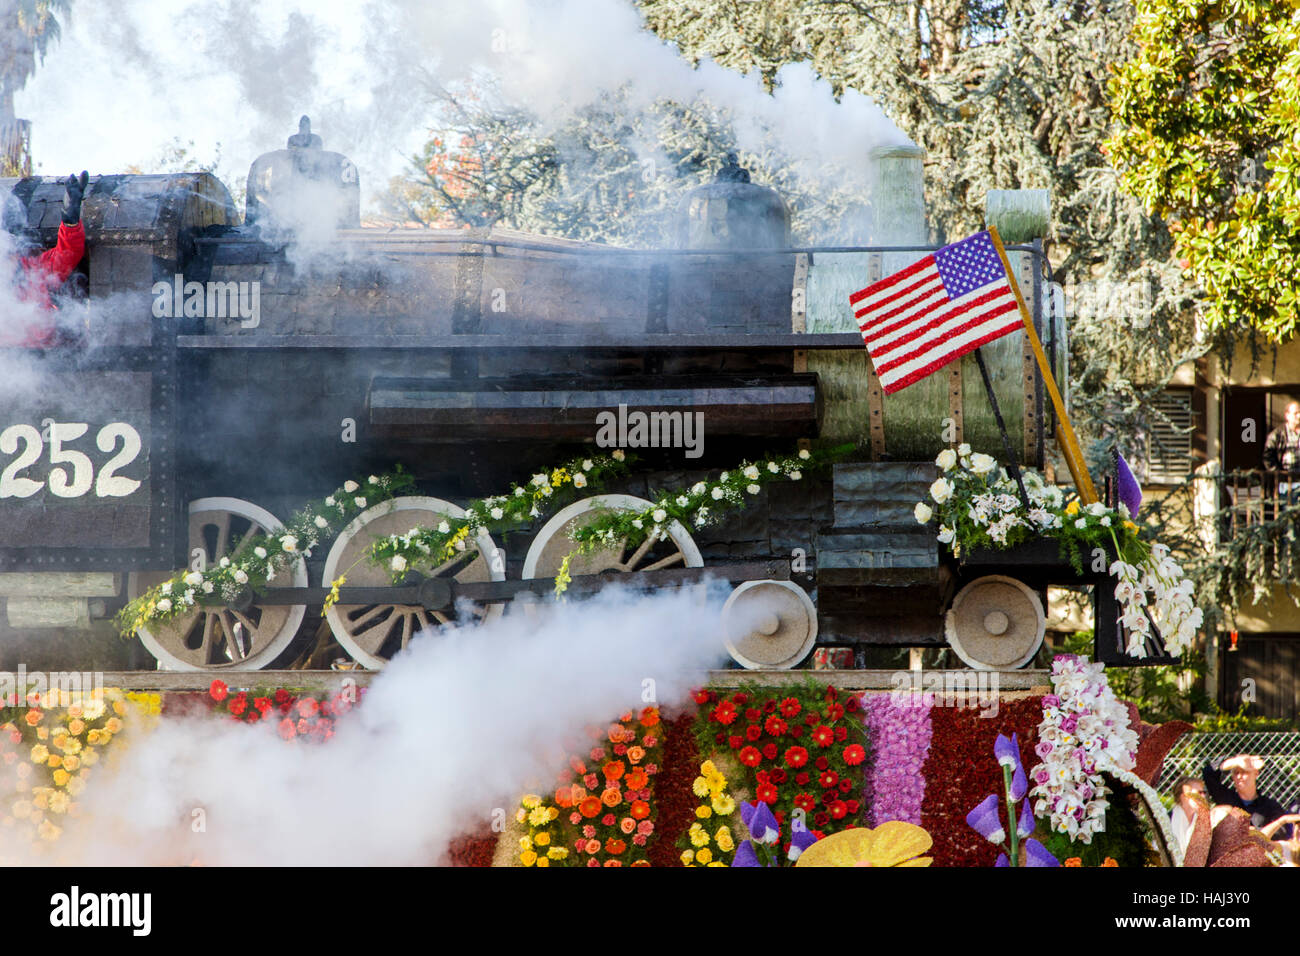 Float decorated like steam locomotive with flowers in the annual New Years Day Rose Bowl Parade, Pasadena, California, - Stock Image